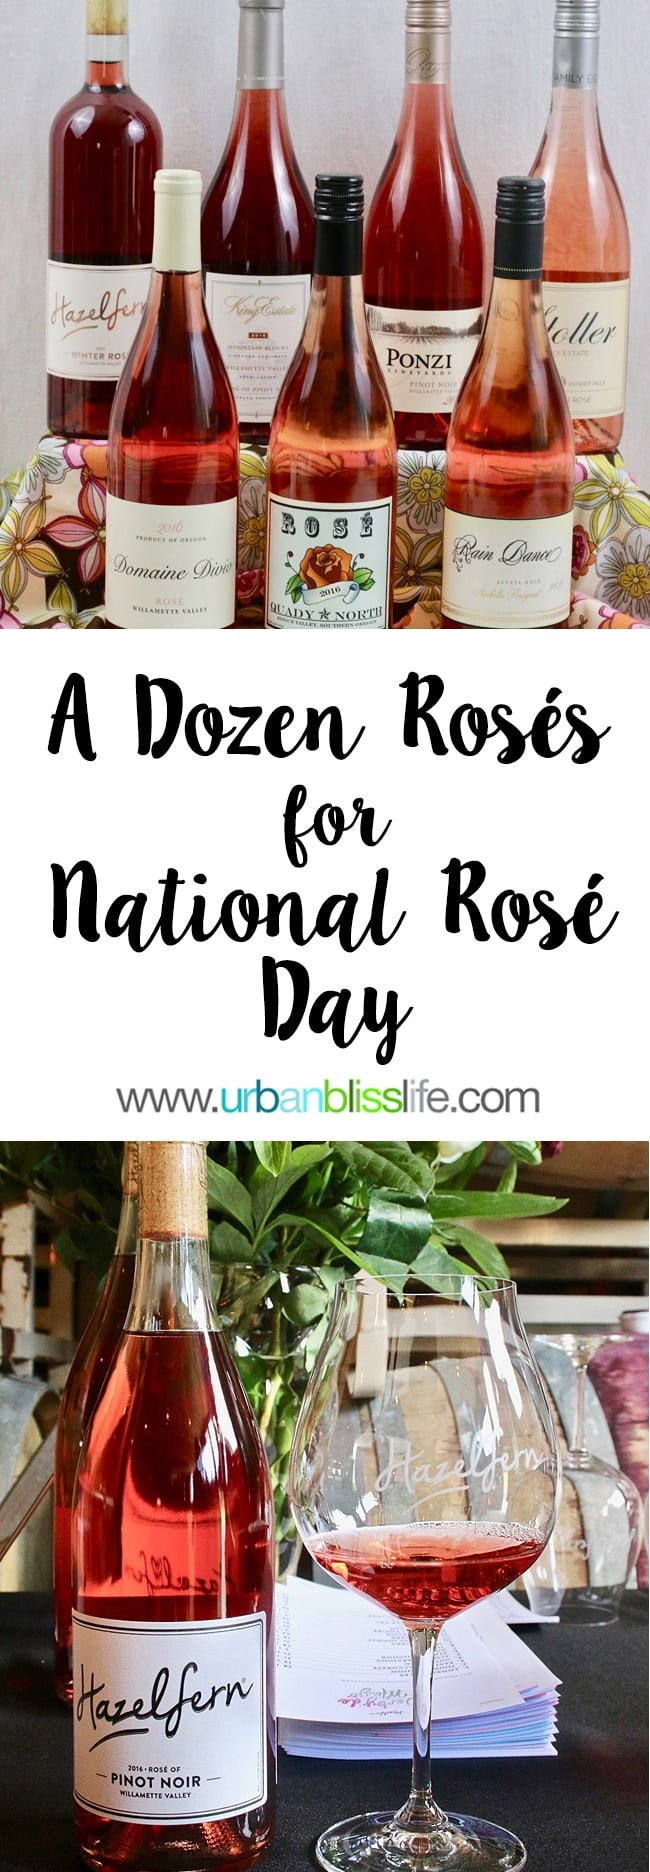 A Dozen Rosé Wines to Try for National Rose Day 2017 on UrbanBlissLife.com